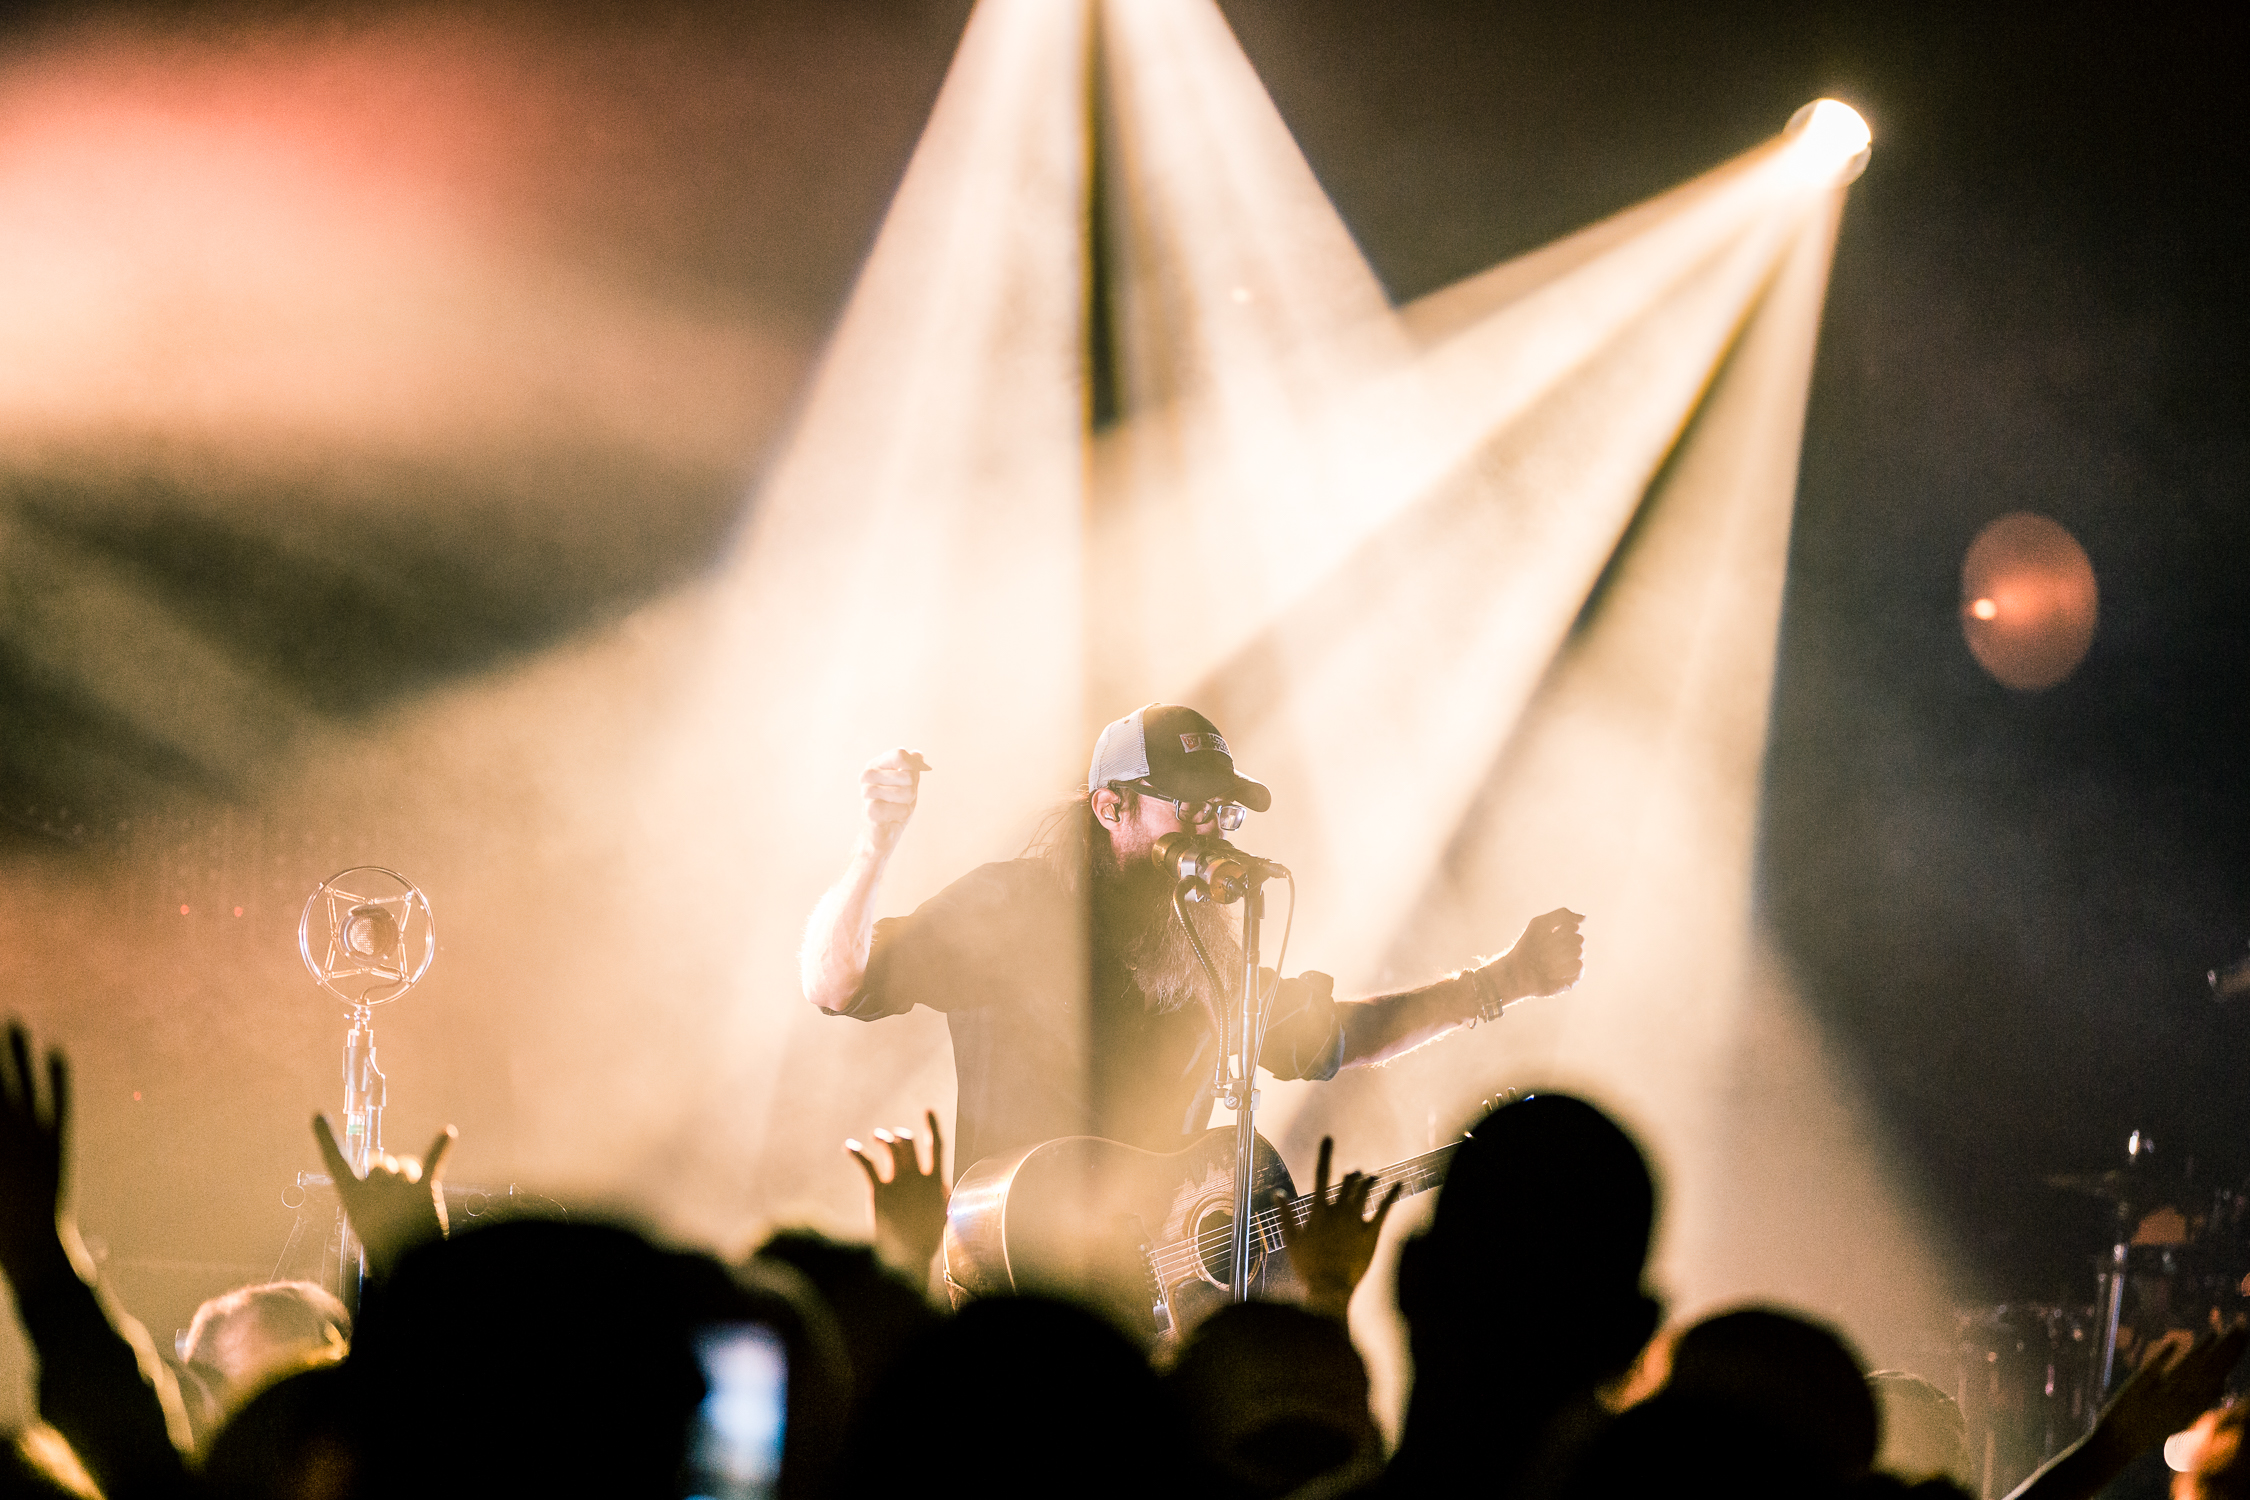 Concert photography is all about waiting for the right moment. While I think this photo has a lot of great elements to it (overall composition, lighting, subject, foreground crowd) I think the photo below is stronger.